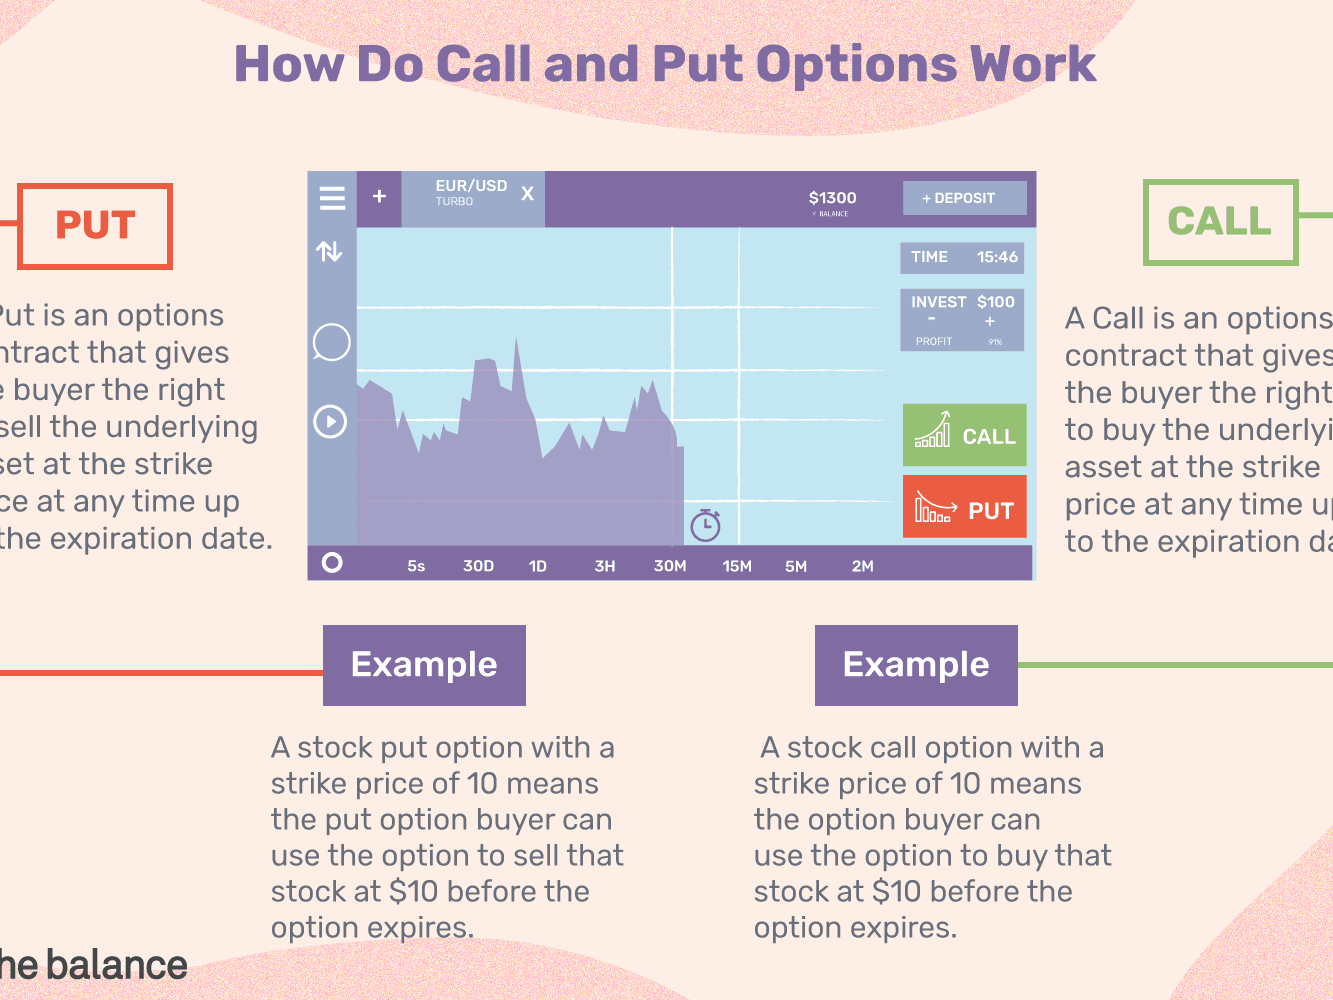 Call and put options definitions and examples.